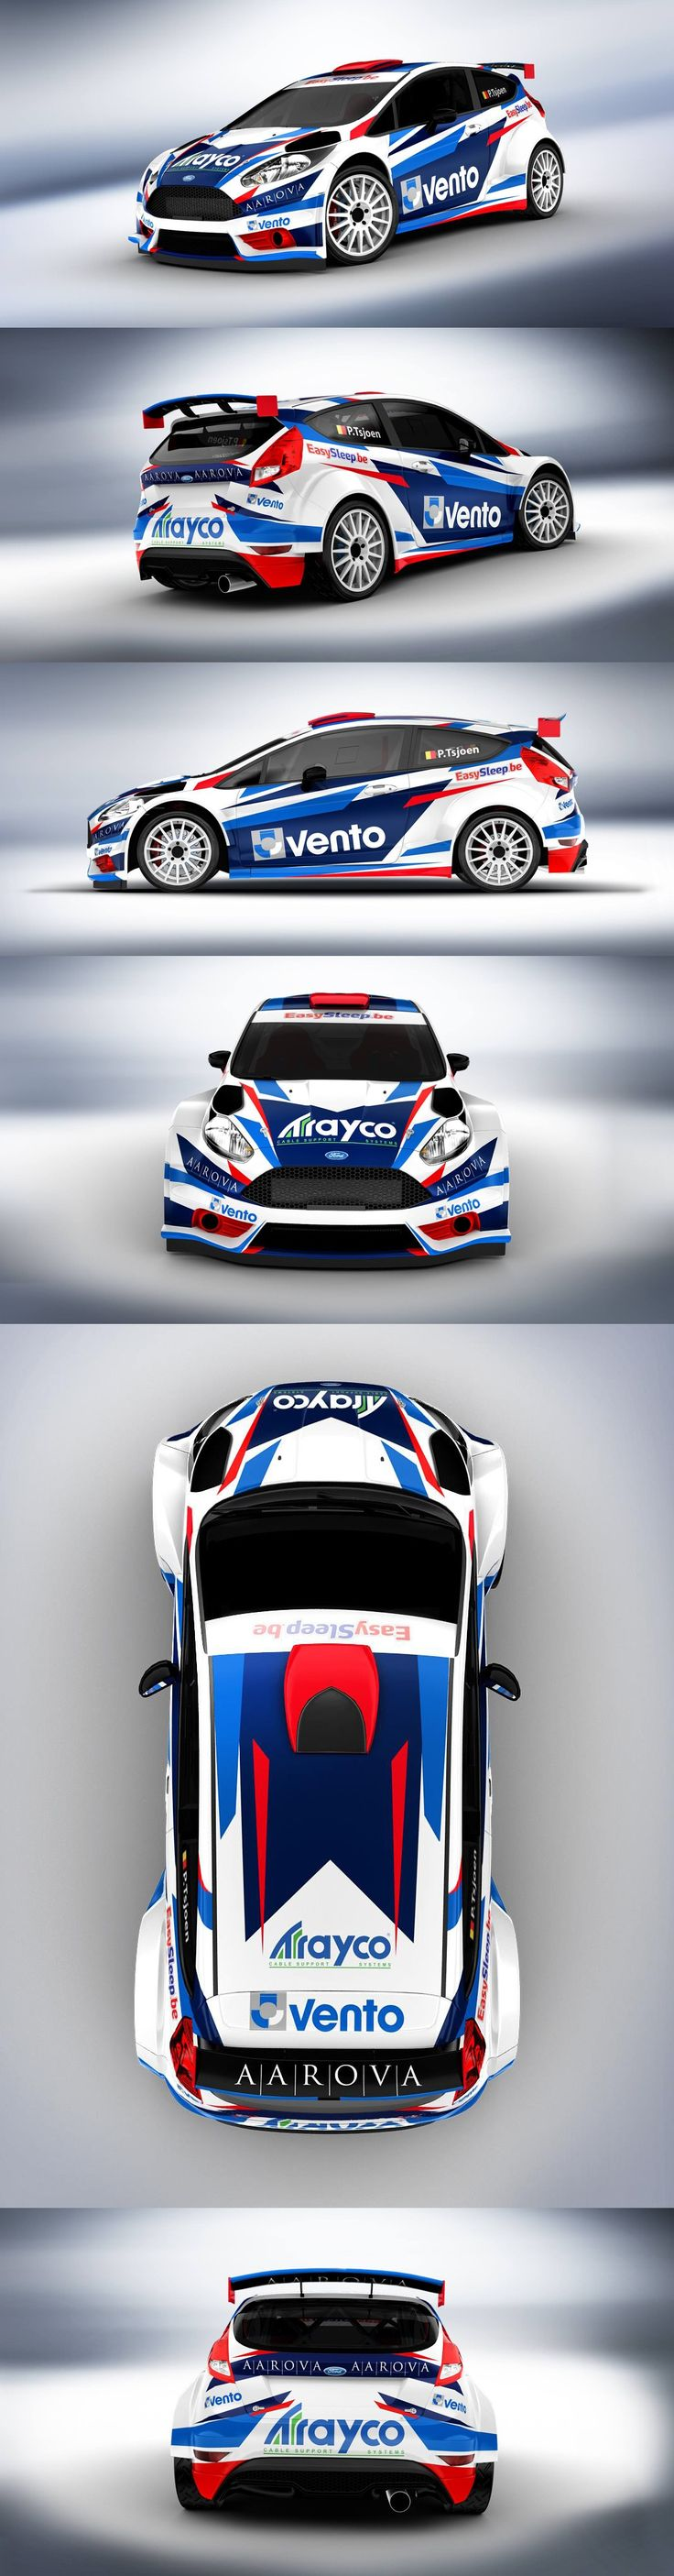 Ford Fiesta racing livery. We collect and generate ideas: ufx.dk